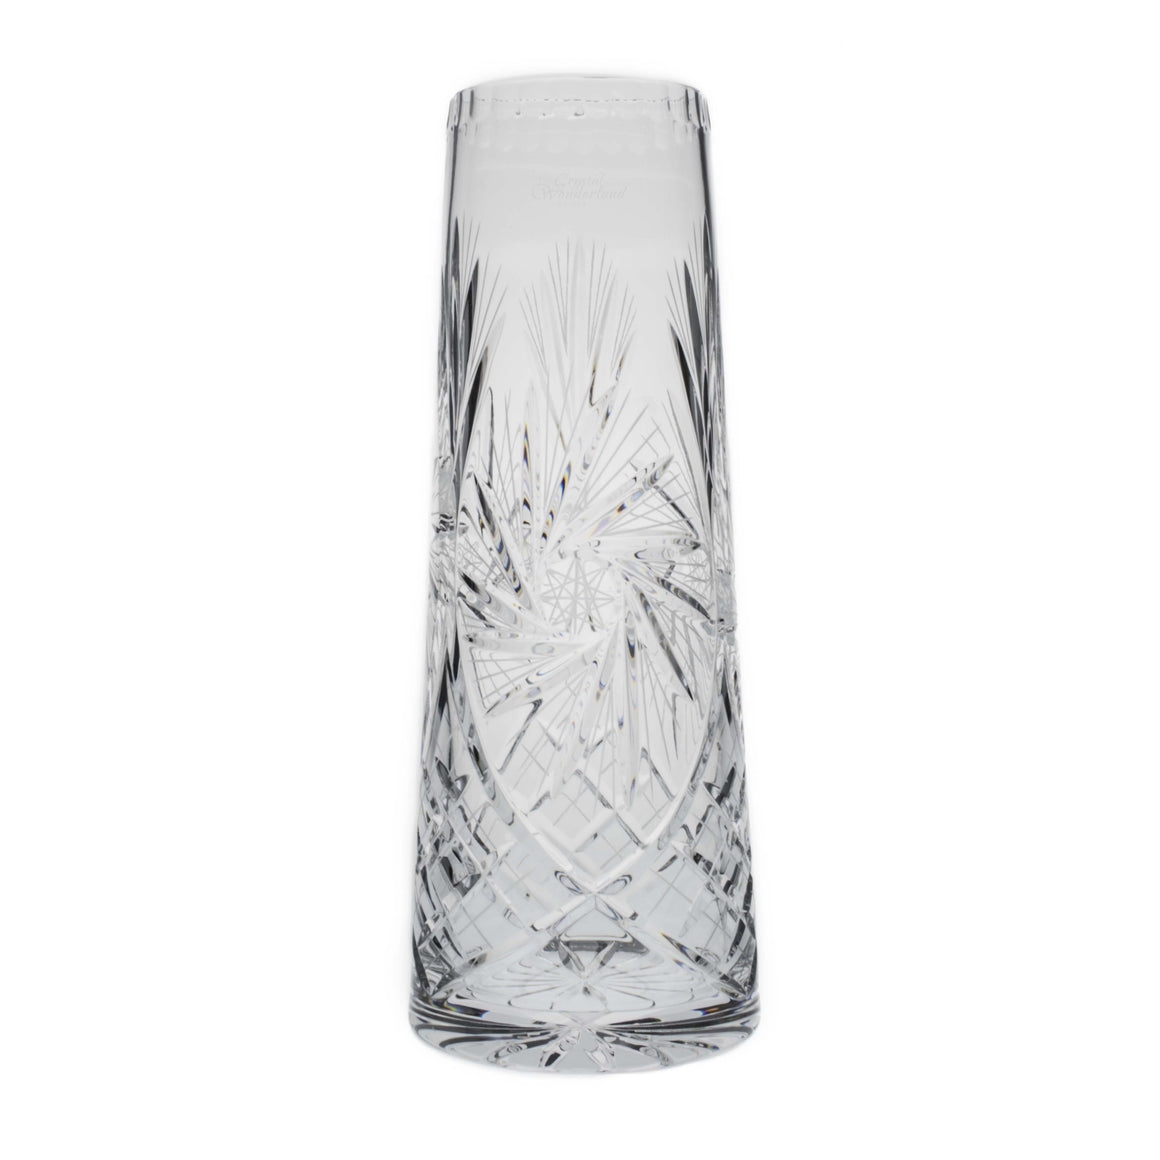 Starlet Floor Crystal Vase - The Crystal Wonderland